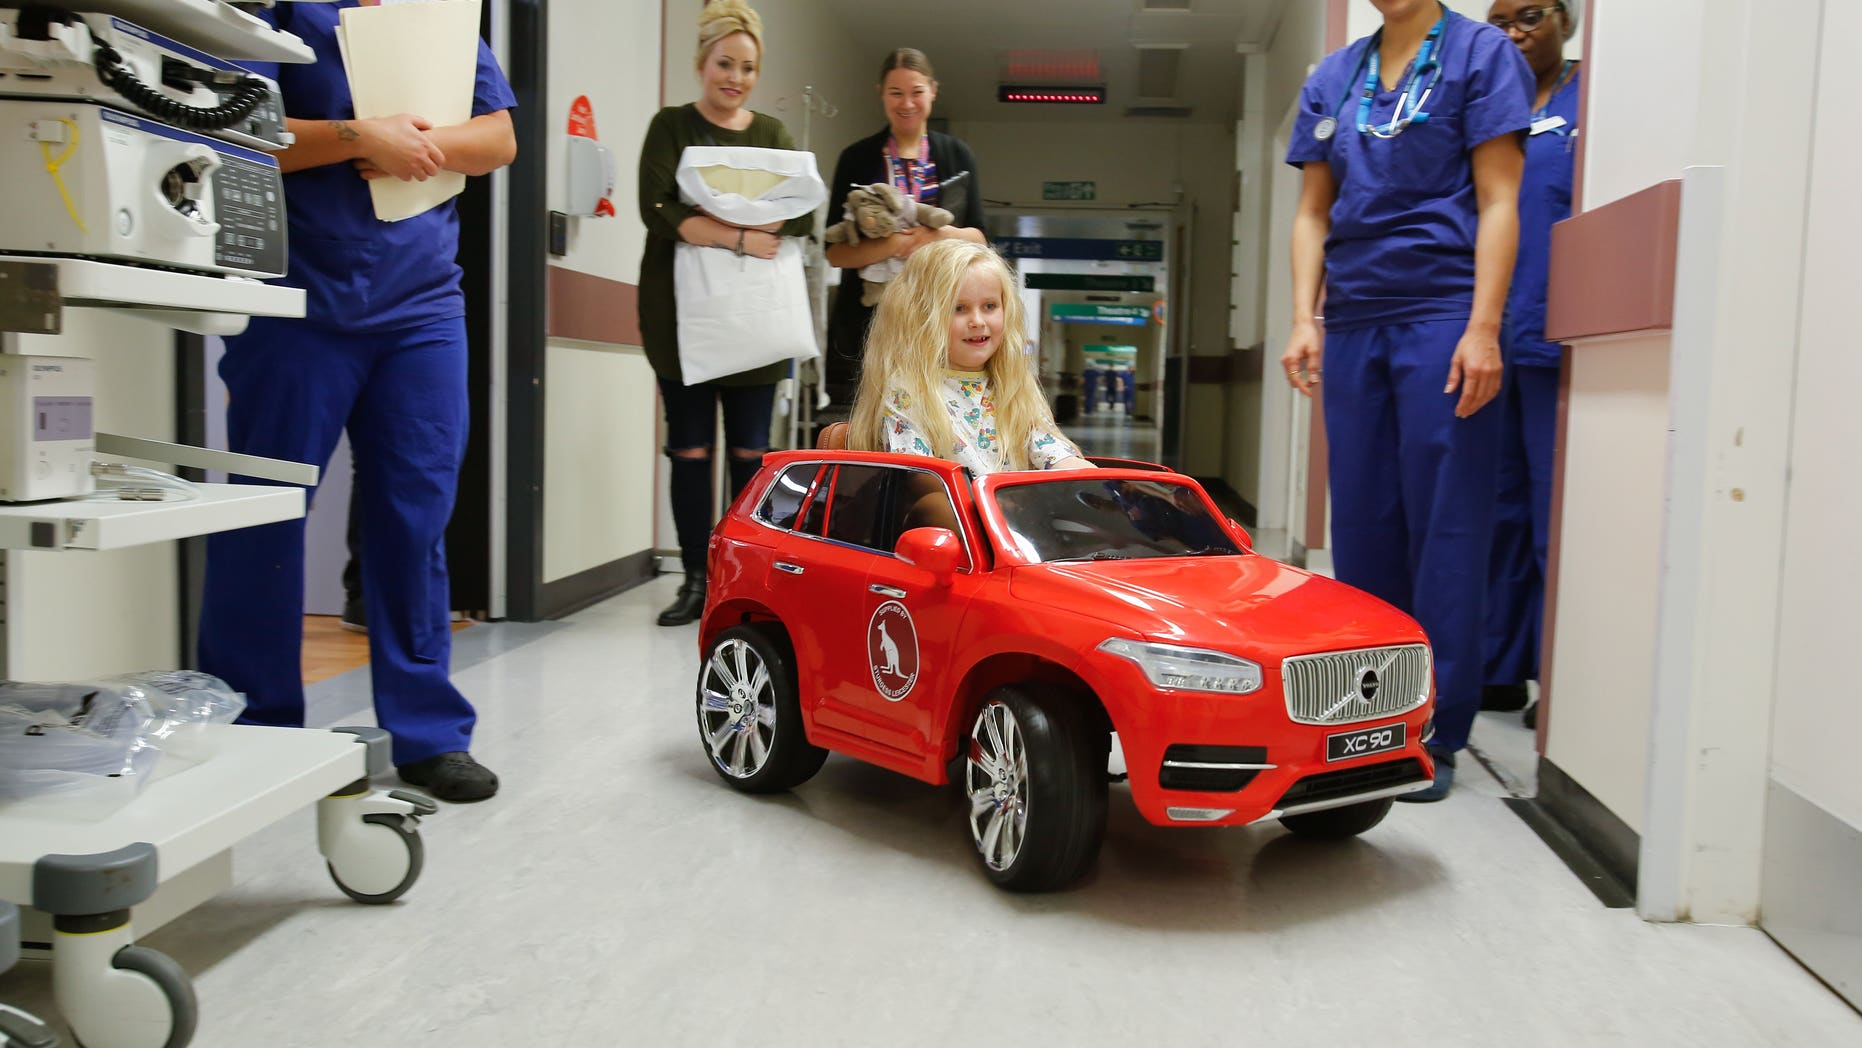 Sophia Mars, was the first child patient to drive a new electric car into surgery at Leicester Royal Children's Hospital.